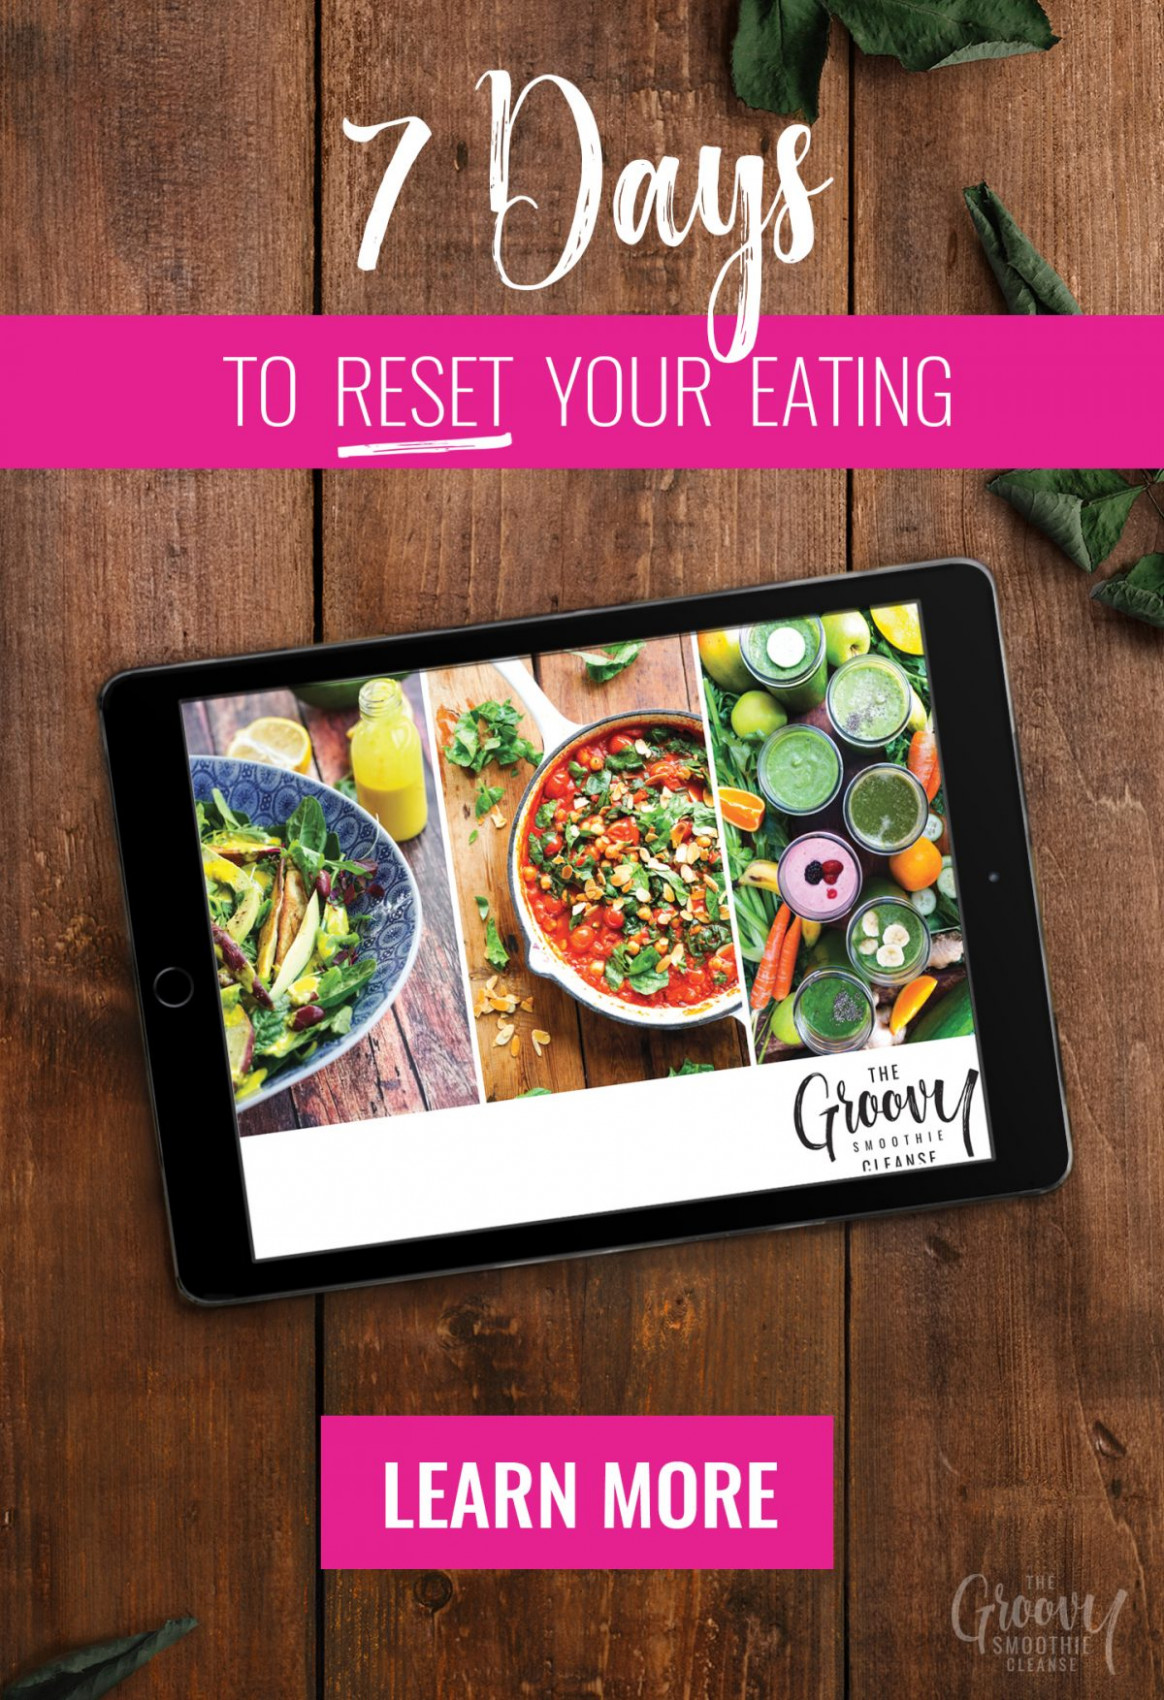 Just Easy Recipes - Easy Recipes, Cooking Tips and ..